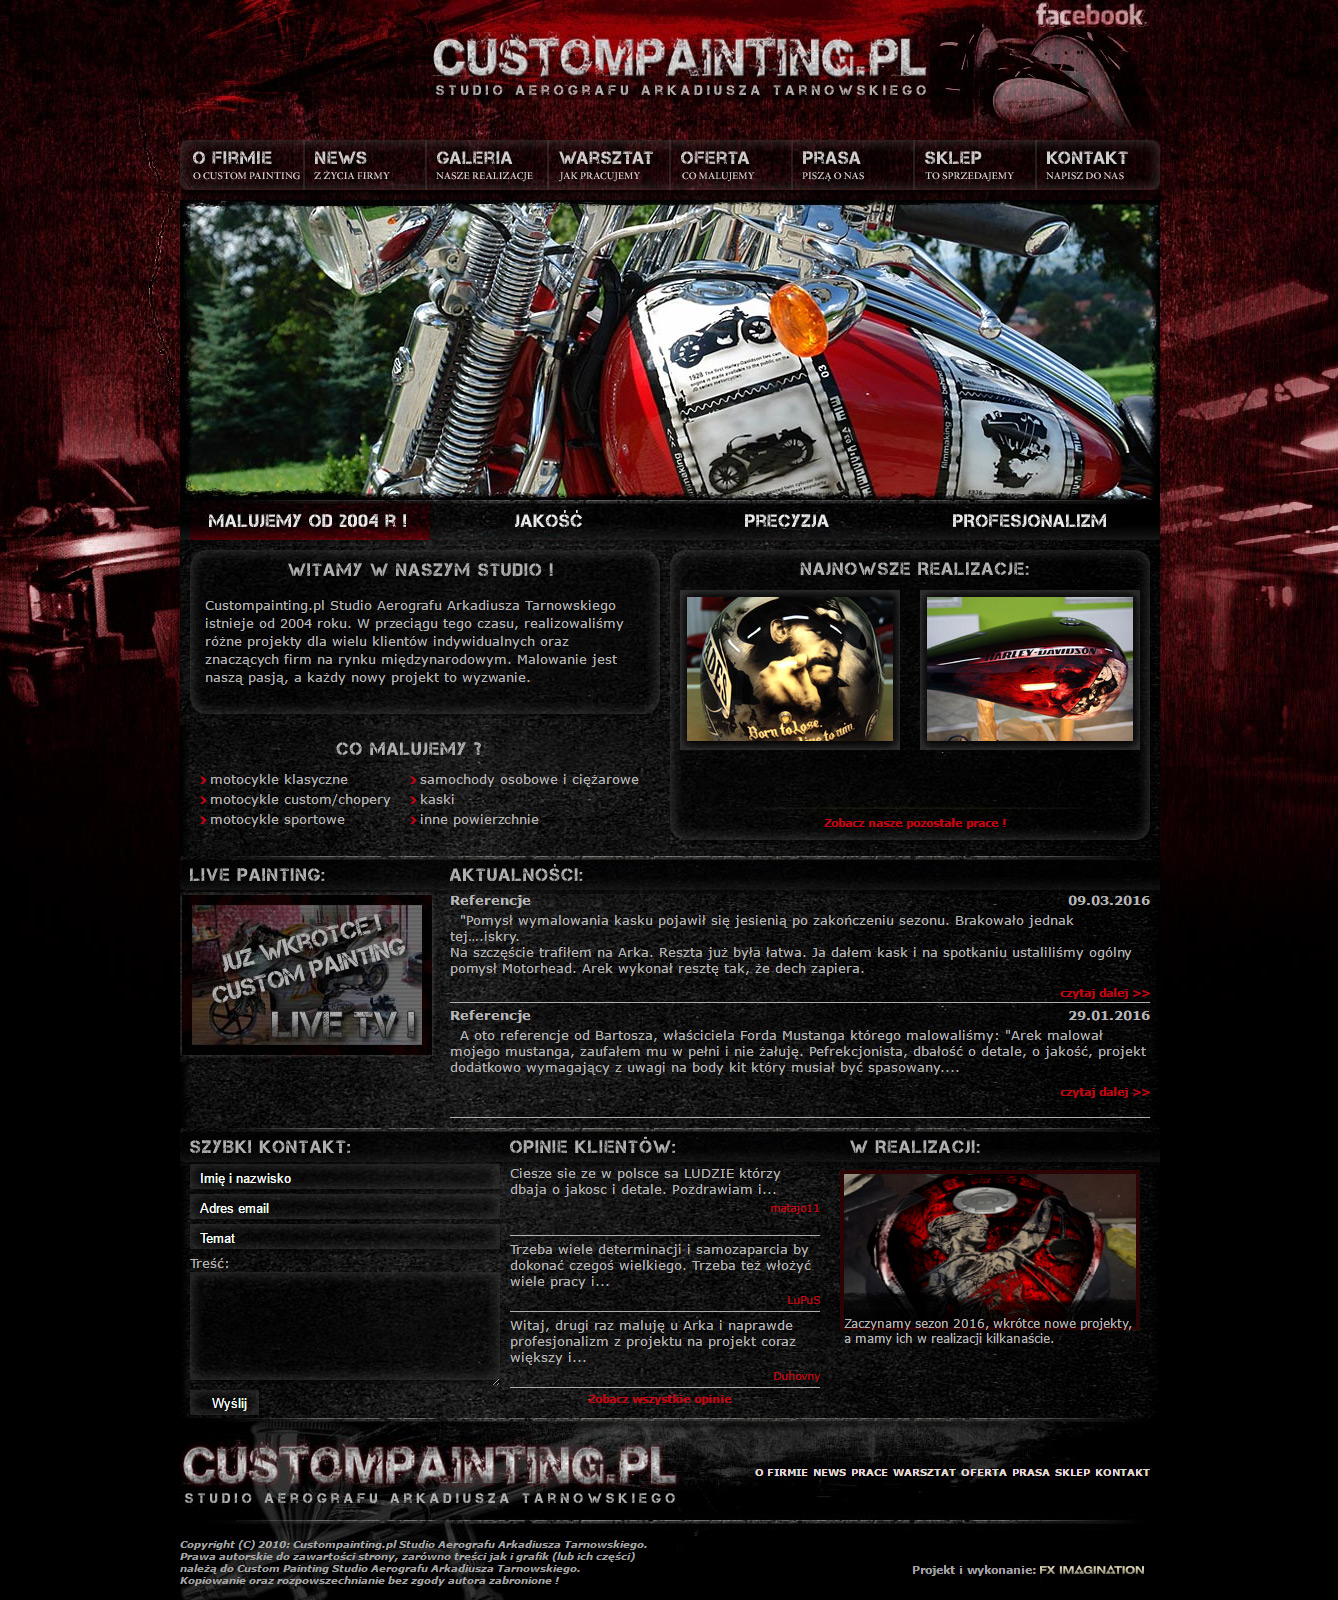 Custompainting.pl Website preview